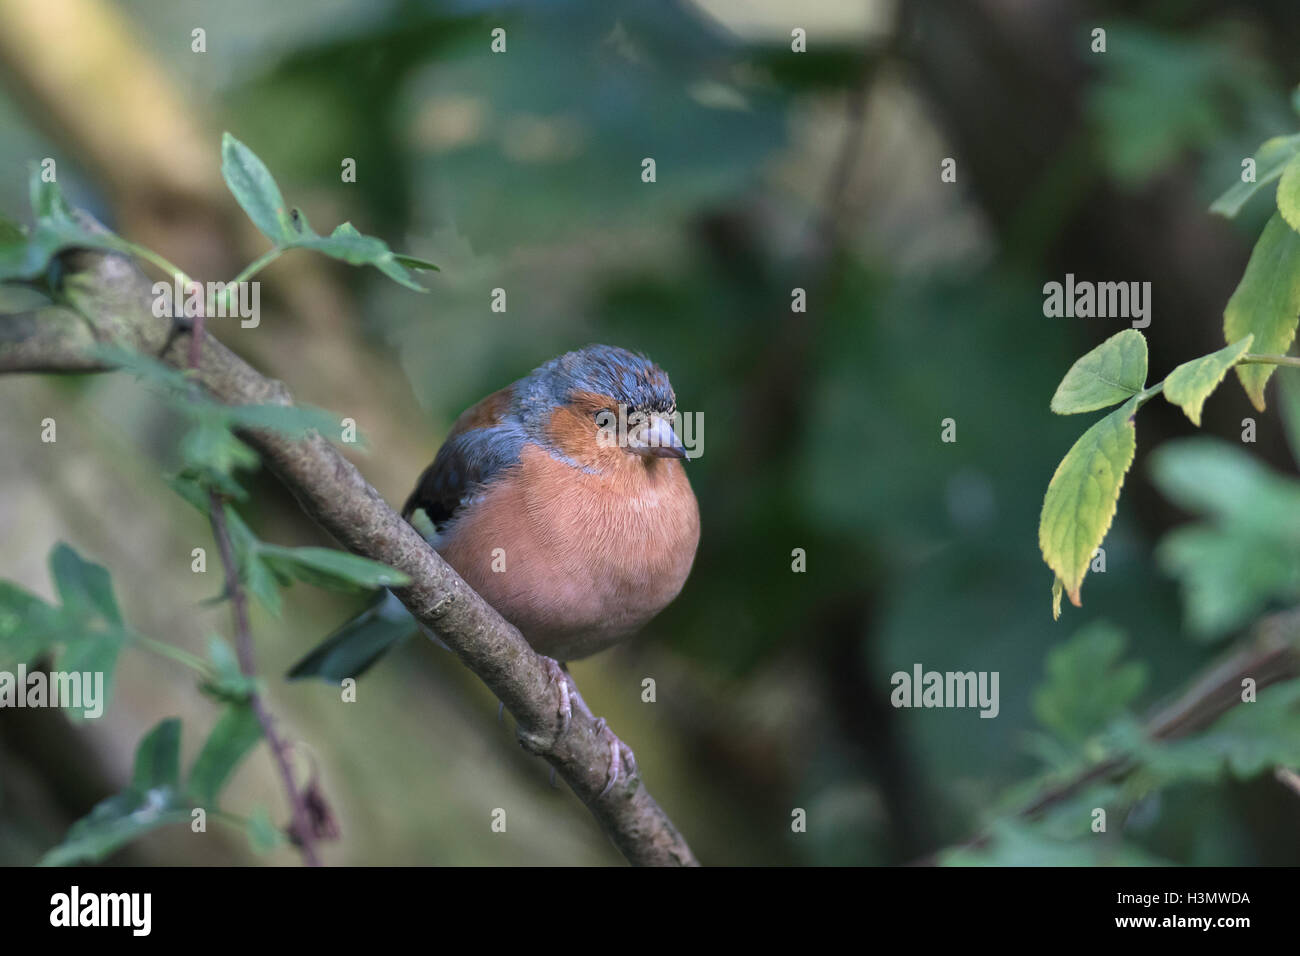 Chaffinch sitting on a branch - Stock Image